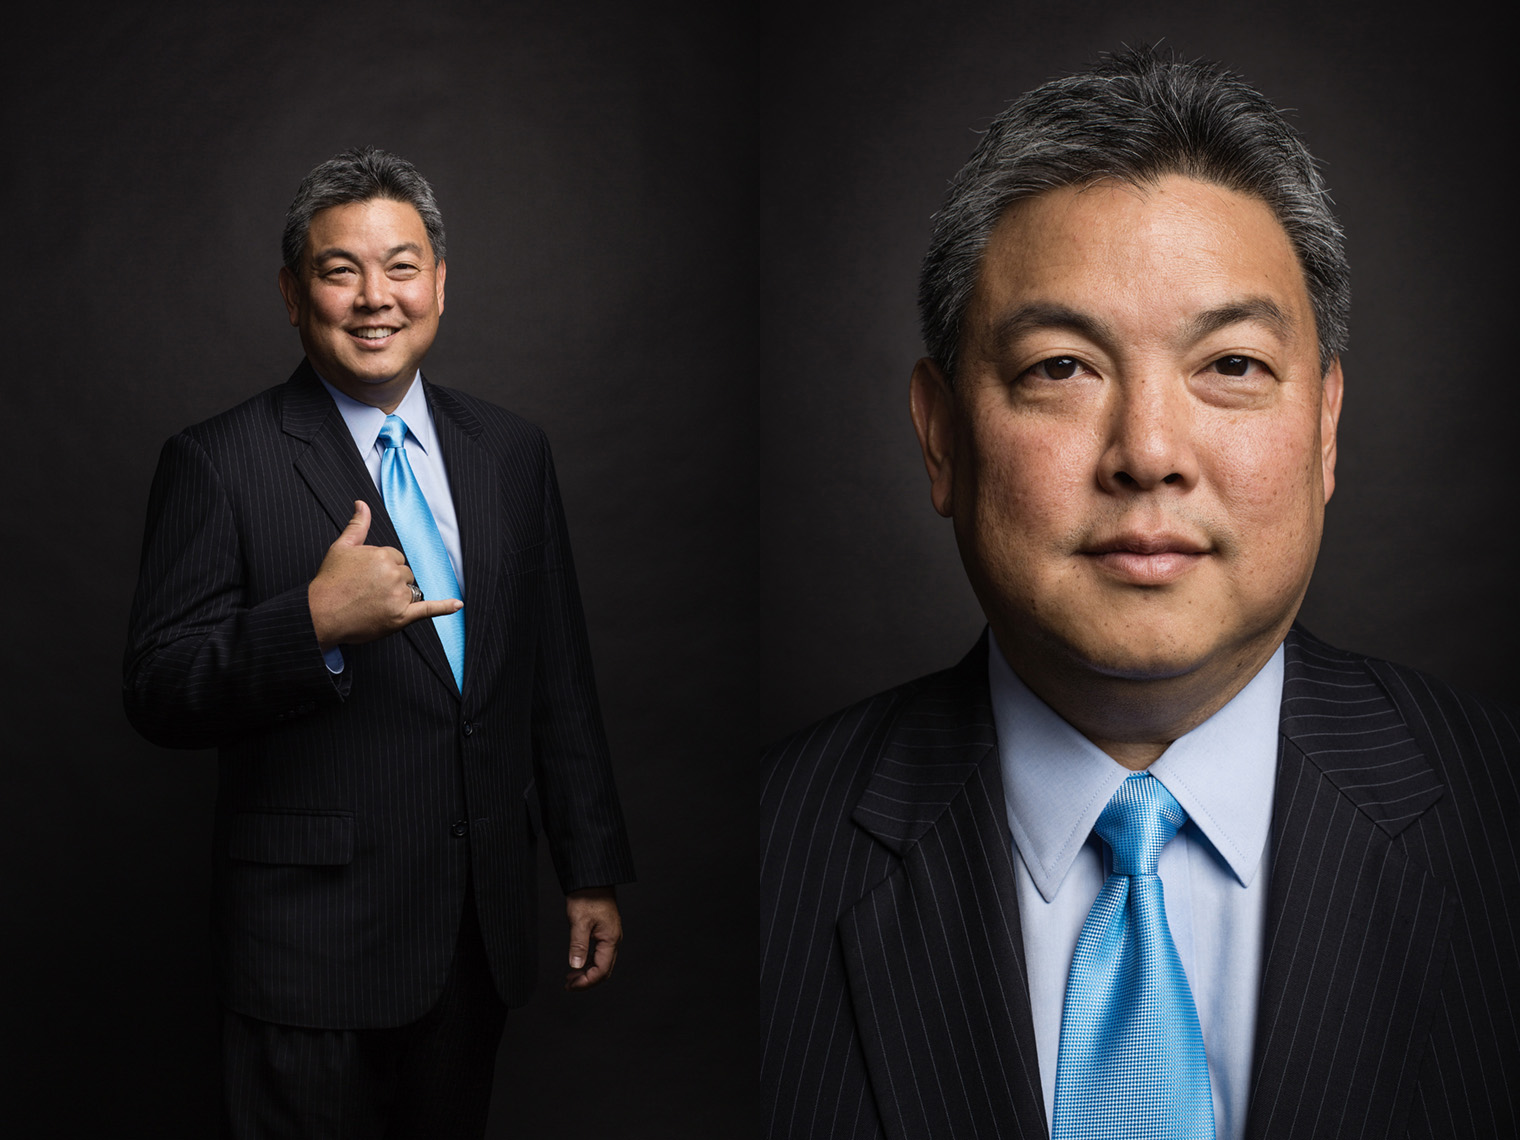 MARK TAKAI, (HI 1st, D) - Photographed for Politico  • Jason Grow Photography